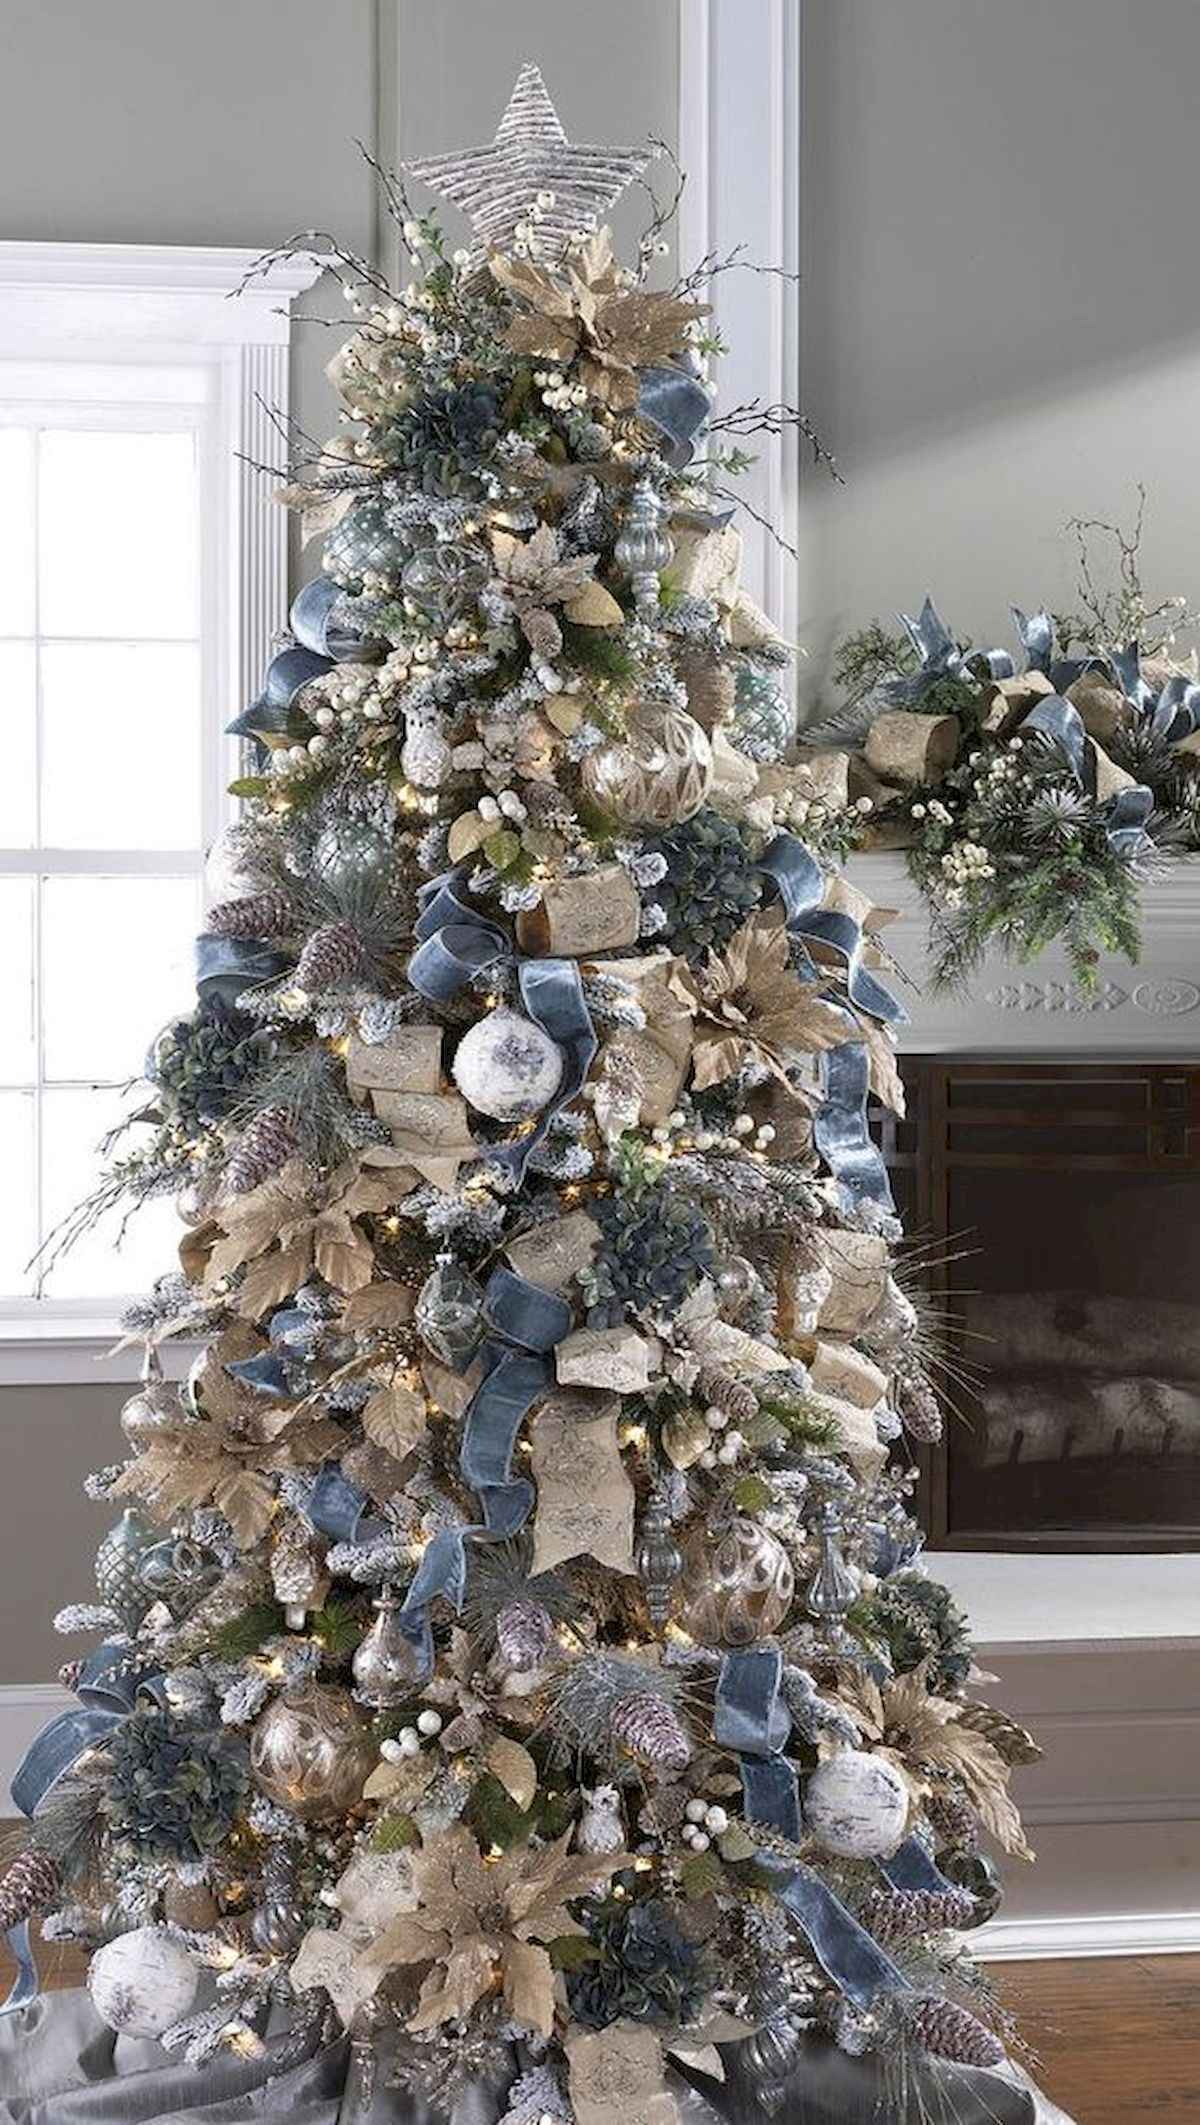 60 awesome christmas tree decorations ideas (19)